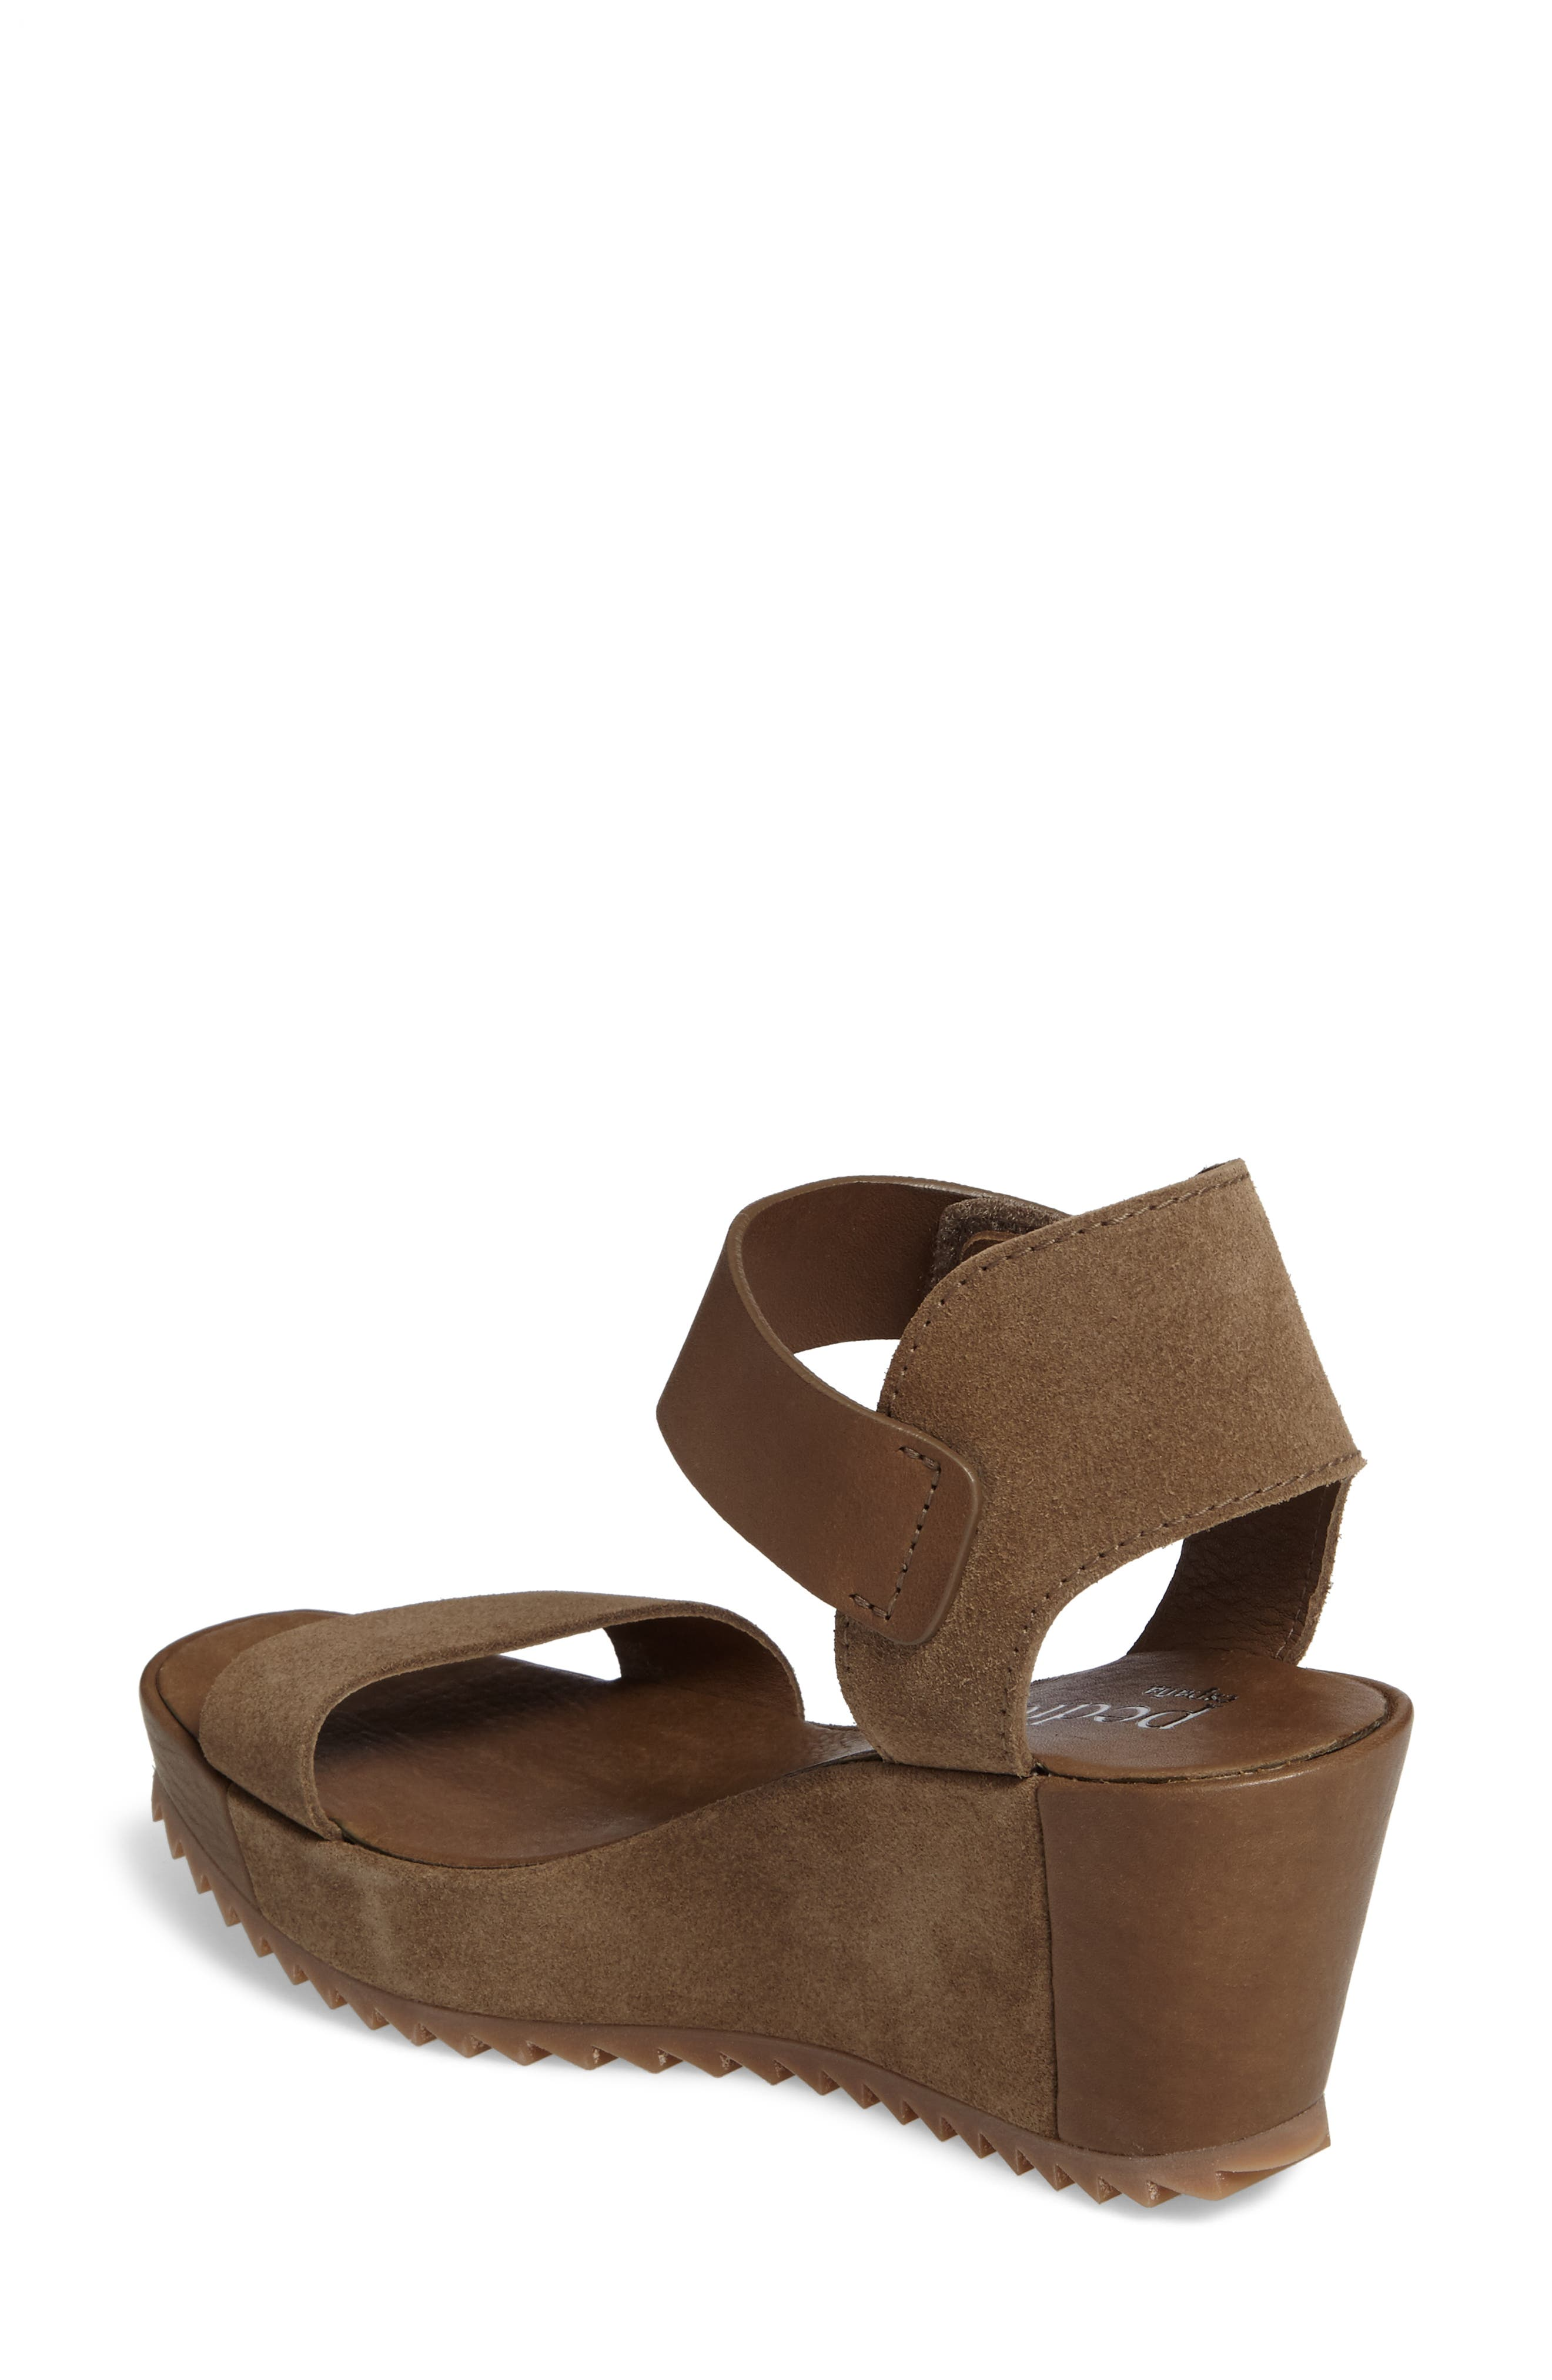 Francesca Wedge Sandal,                             Alternate thumbnail 2, color,                             250